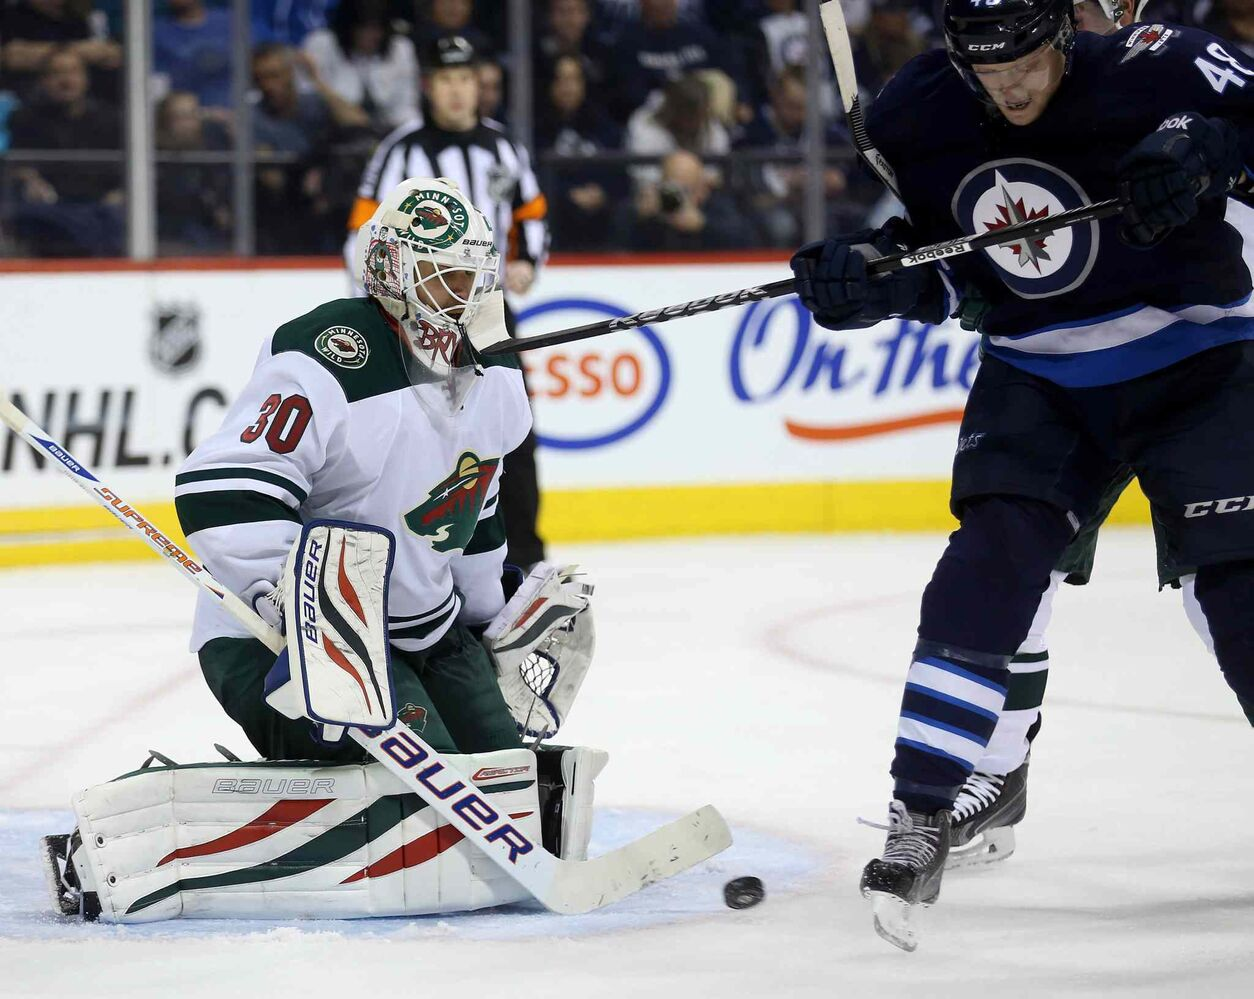 The Wild's Ilya Bryzgalov takes a stick to the mask from the Jets' Carl Klingberg during the second period. (TREVOR HAGAN / THE CANADIAN PRESS)